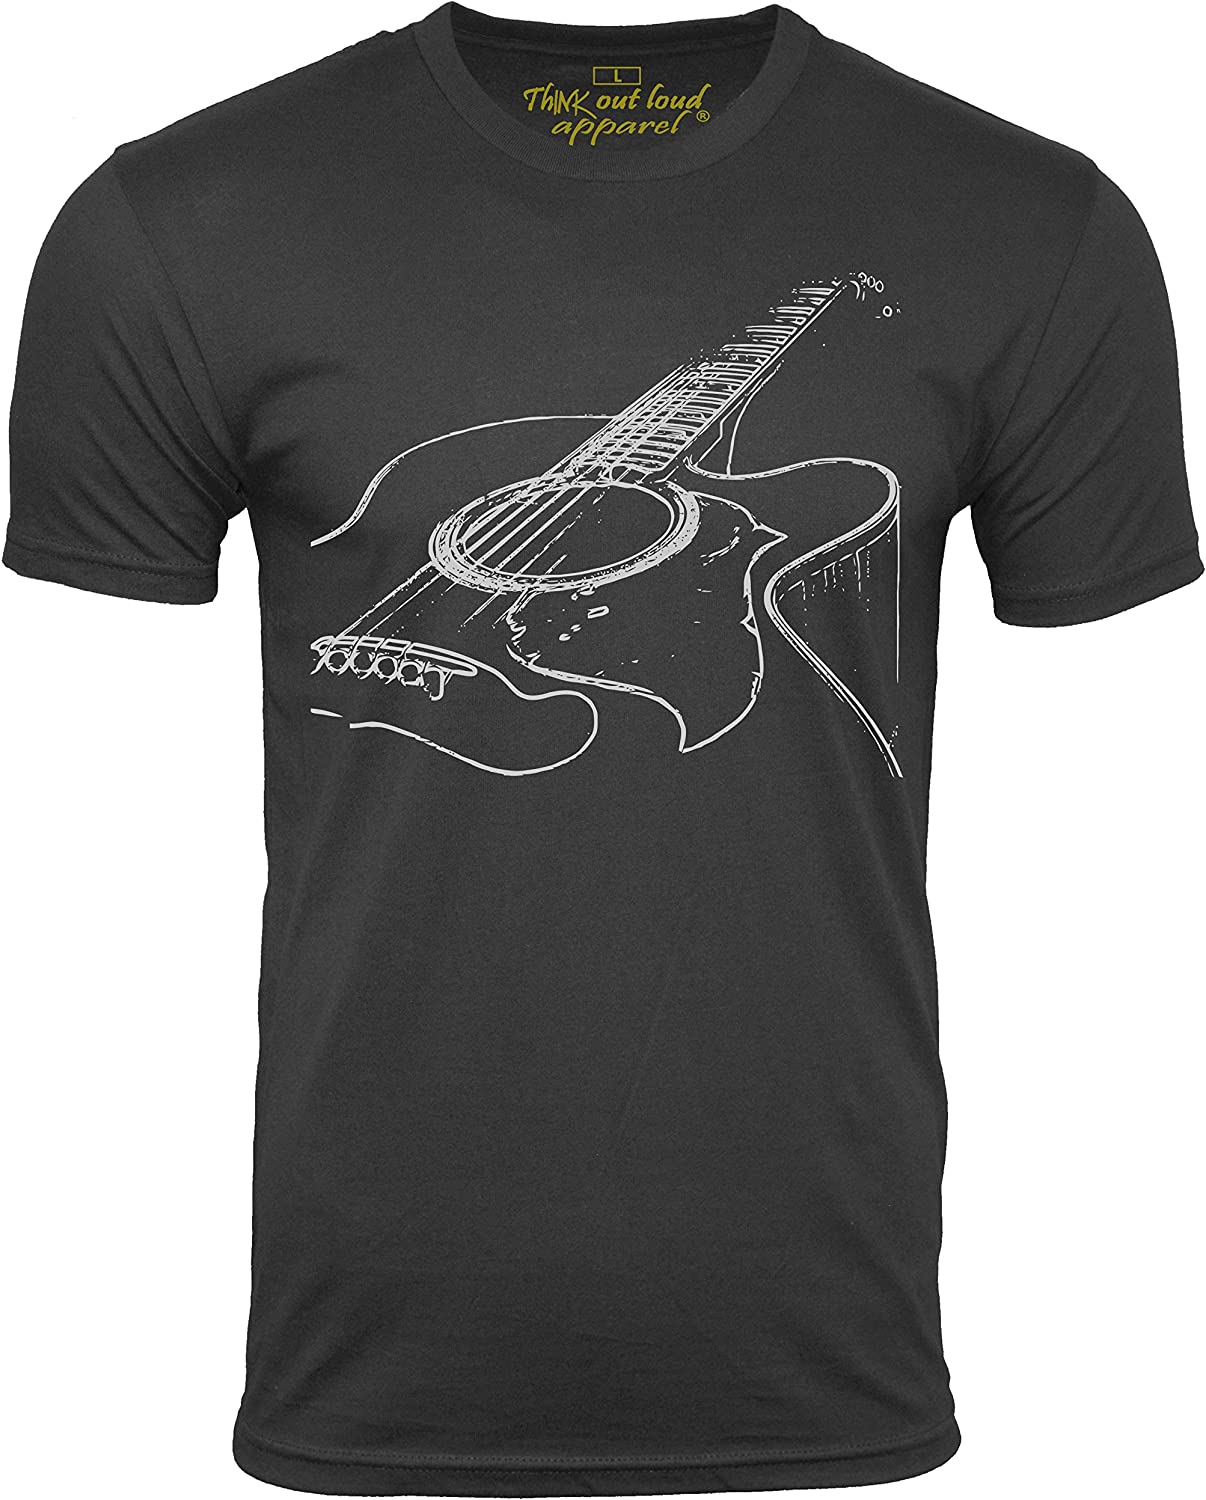 Think Out Loud Apparel Acoustic Guitar Player T Shirt Cool Musician Tee Music T Shirt Artistic Tshirt